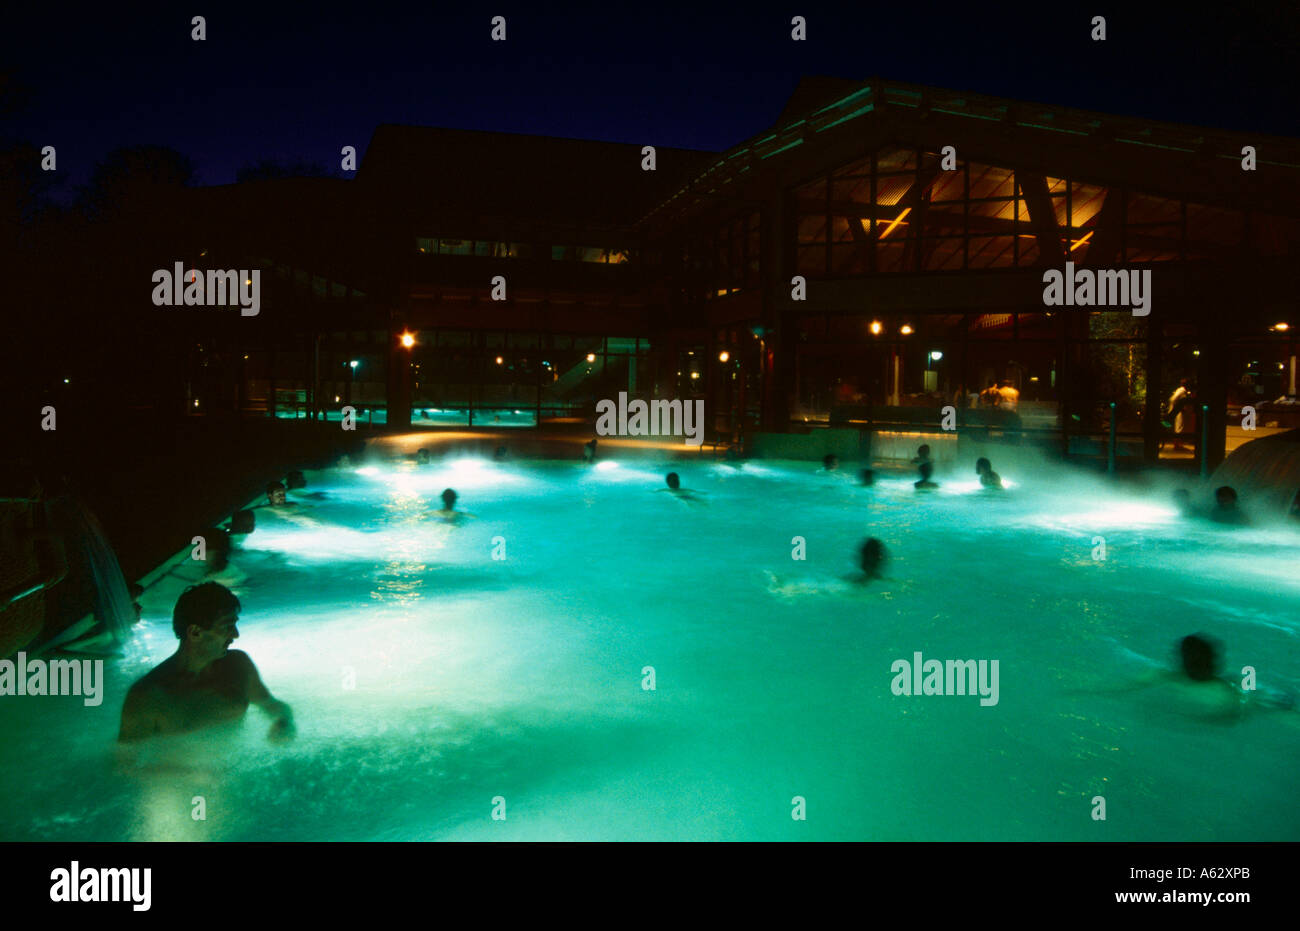 people in swimming pool freiburg baden wurttemberg germany stock photo 6538730 alamy